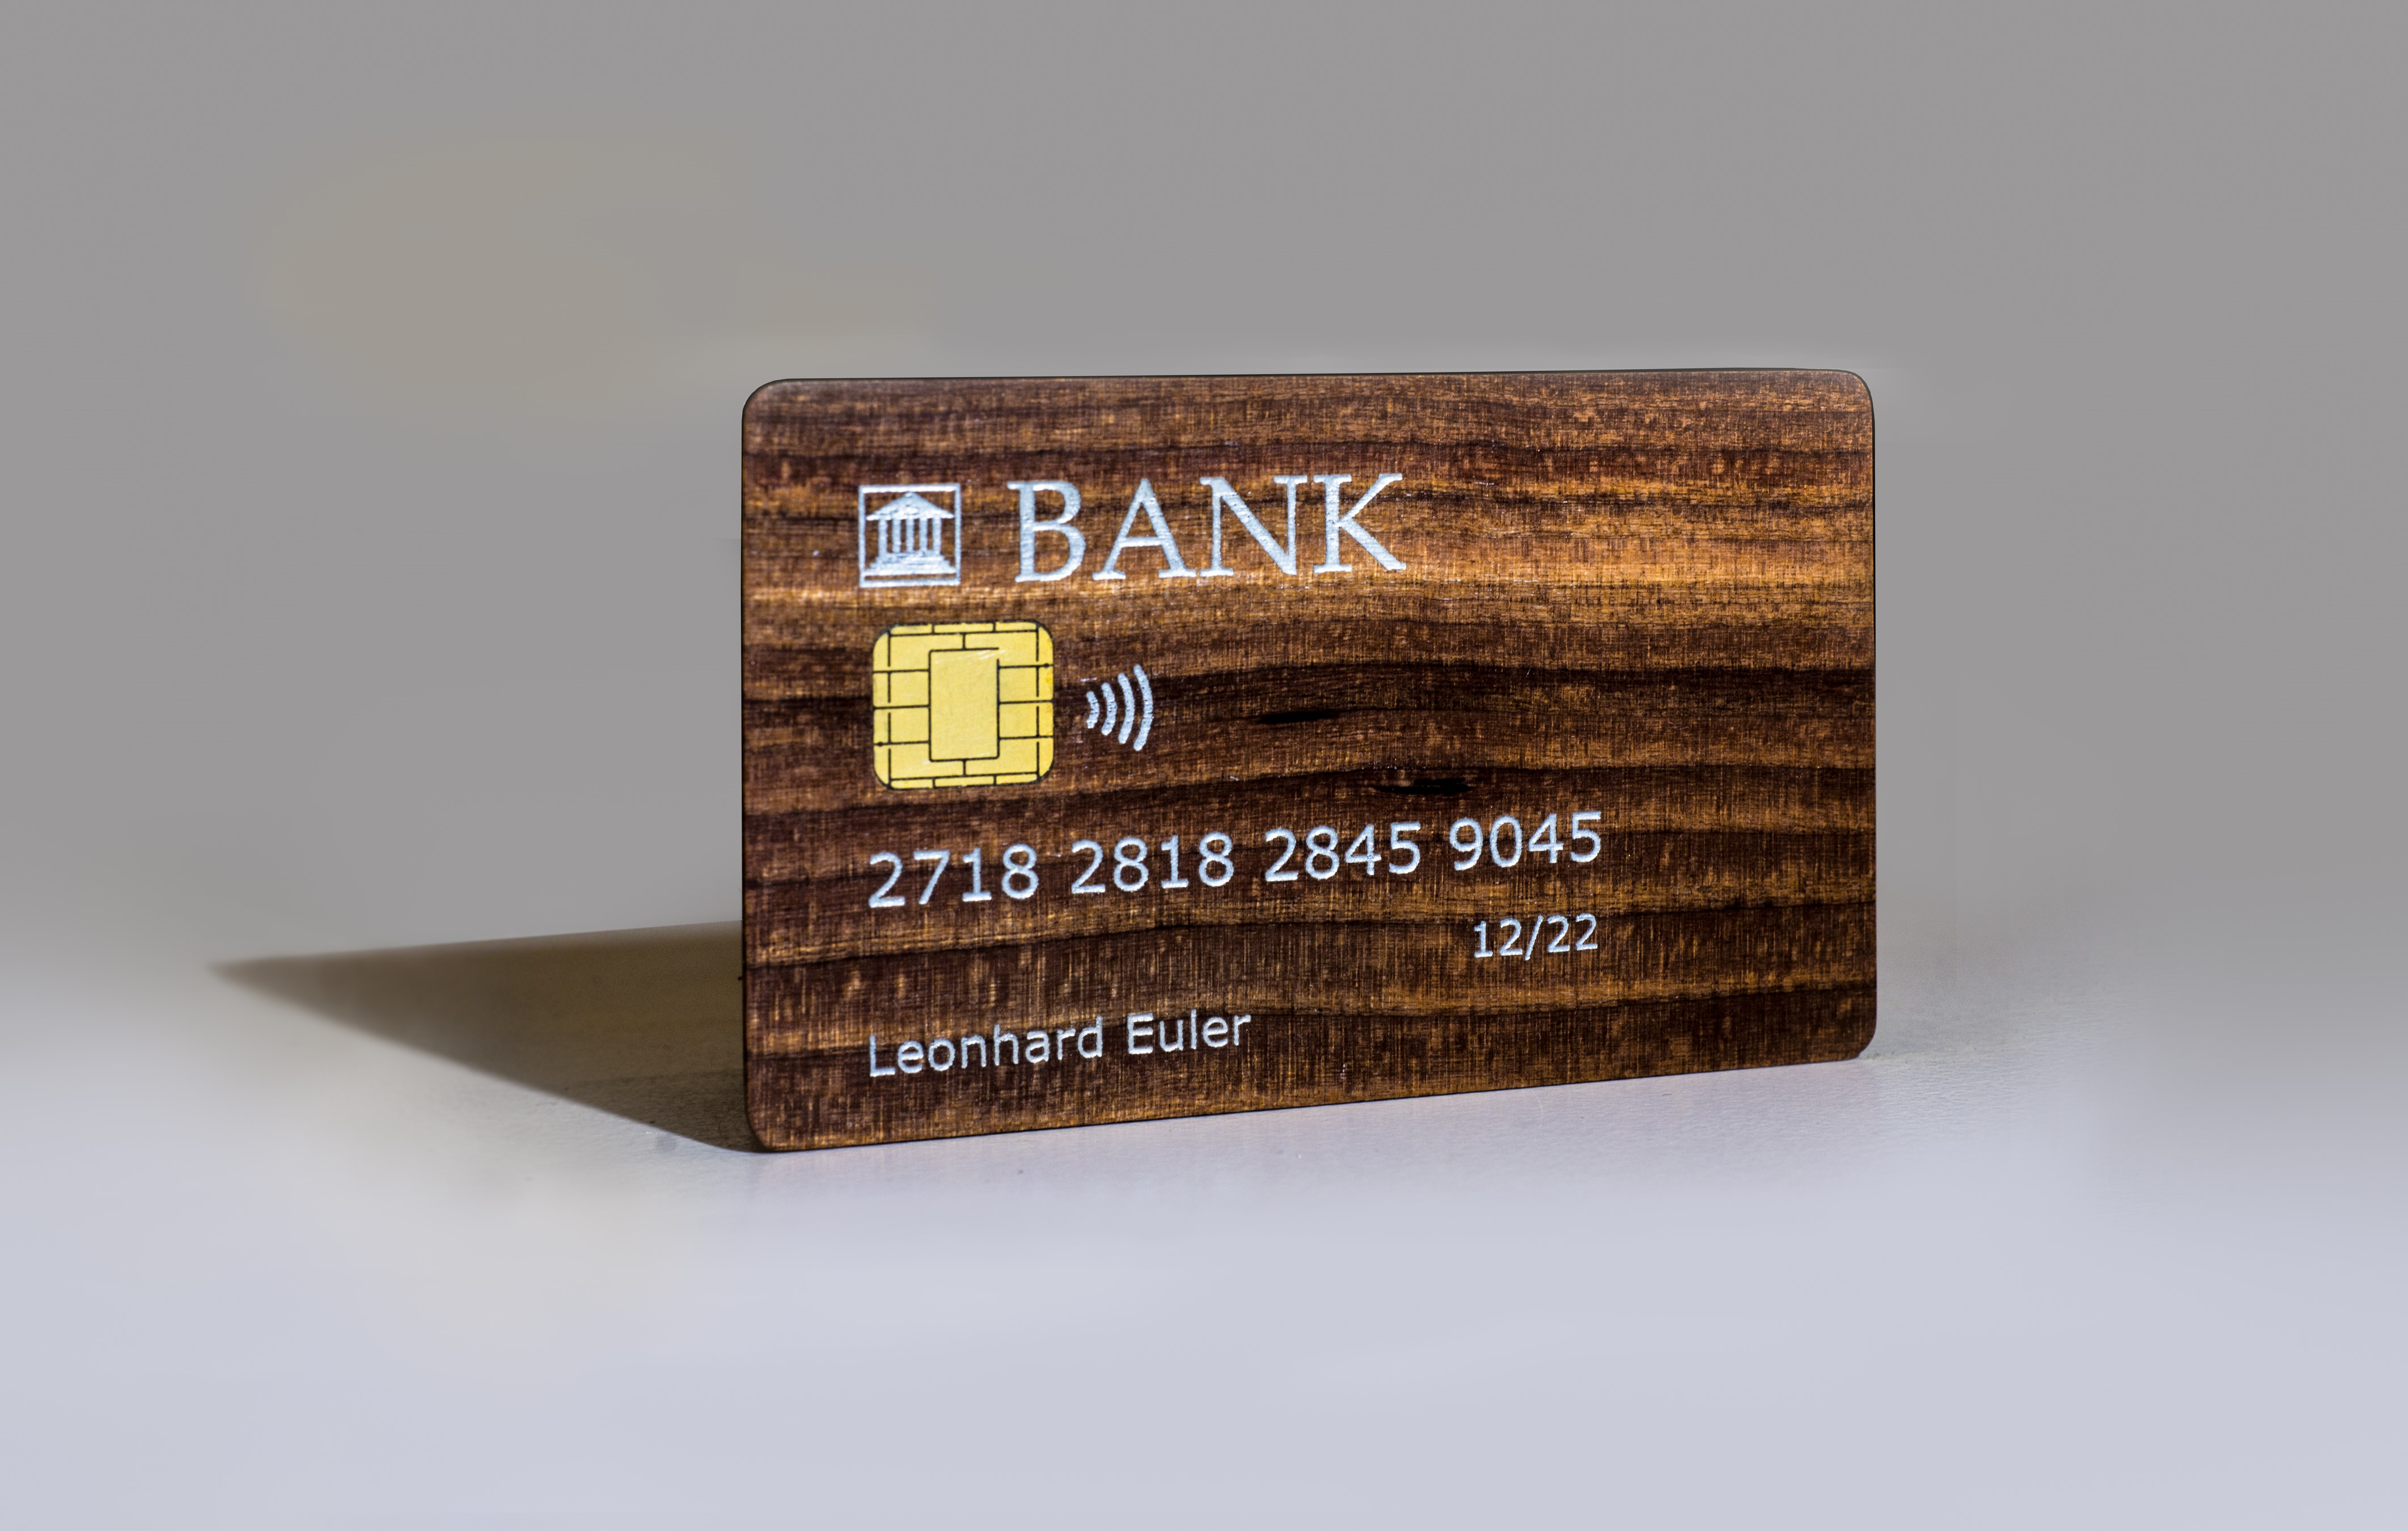 Chip card made of cherry wood, with contactless payment feature